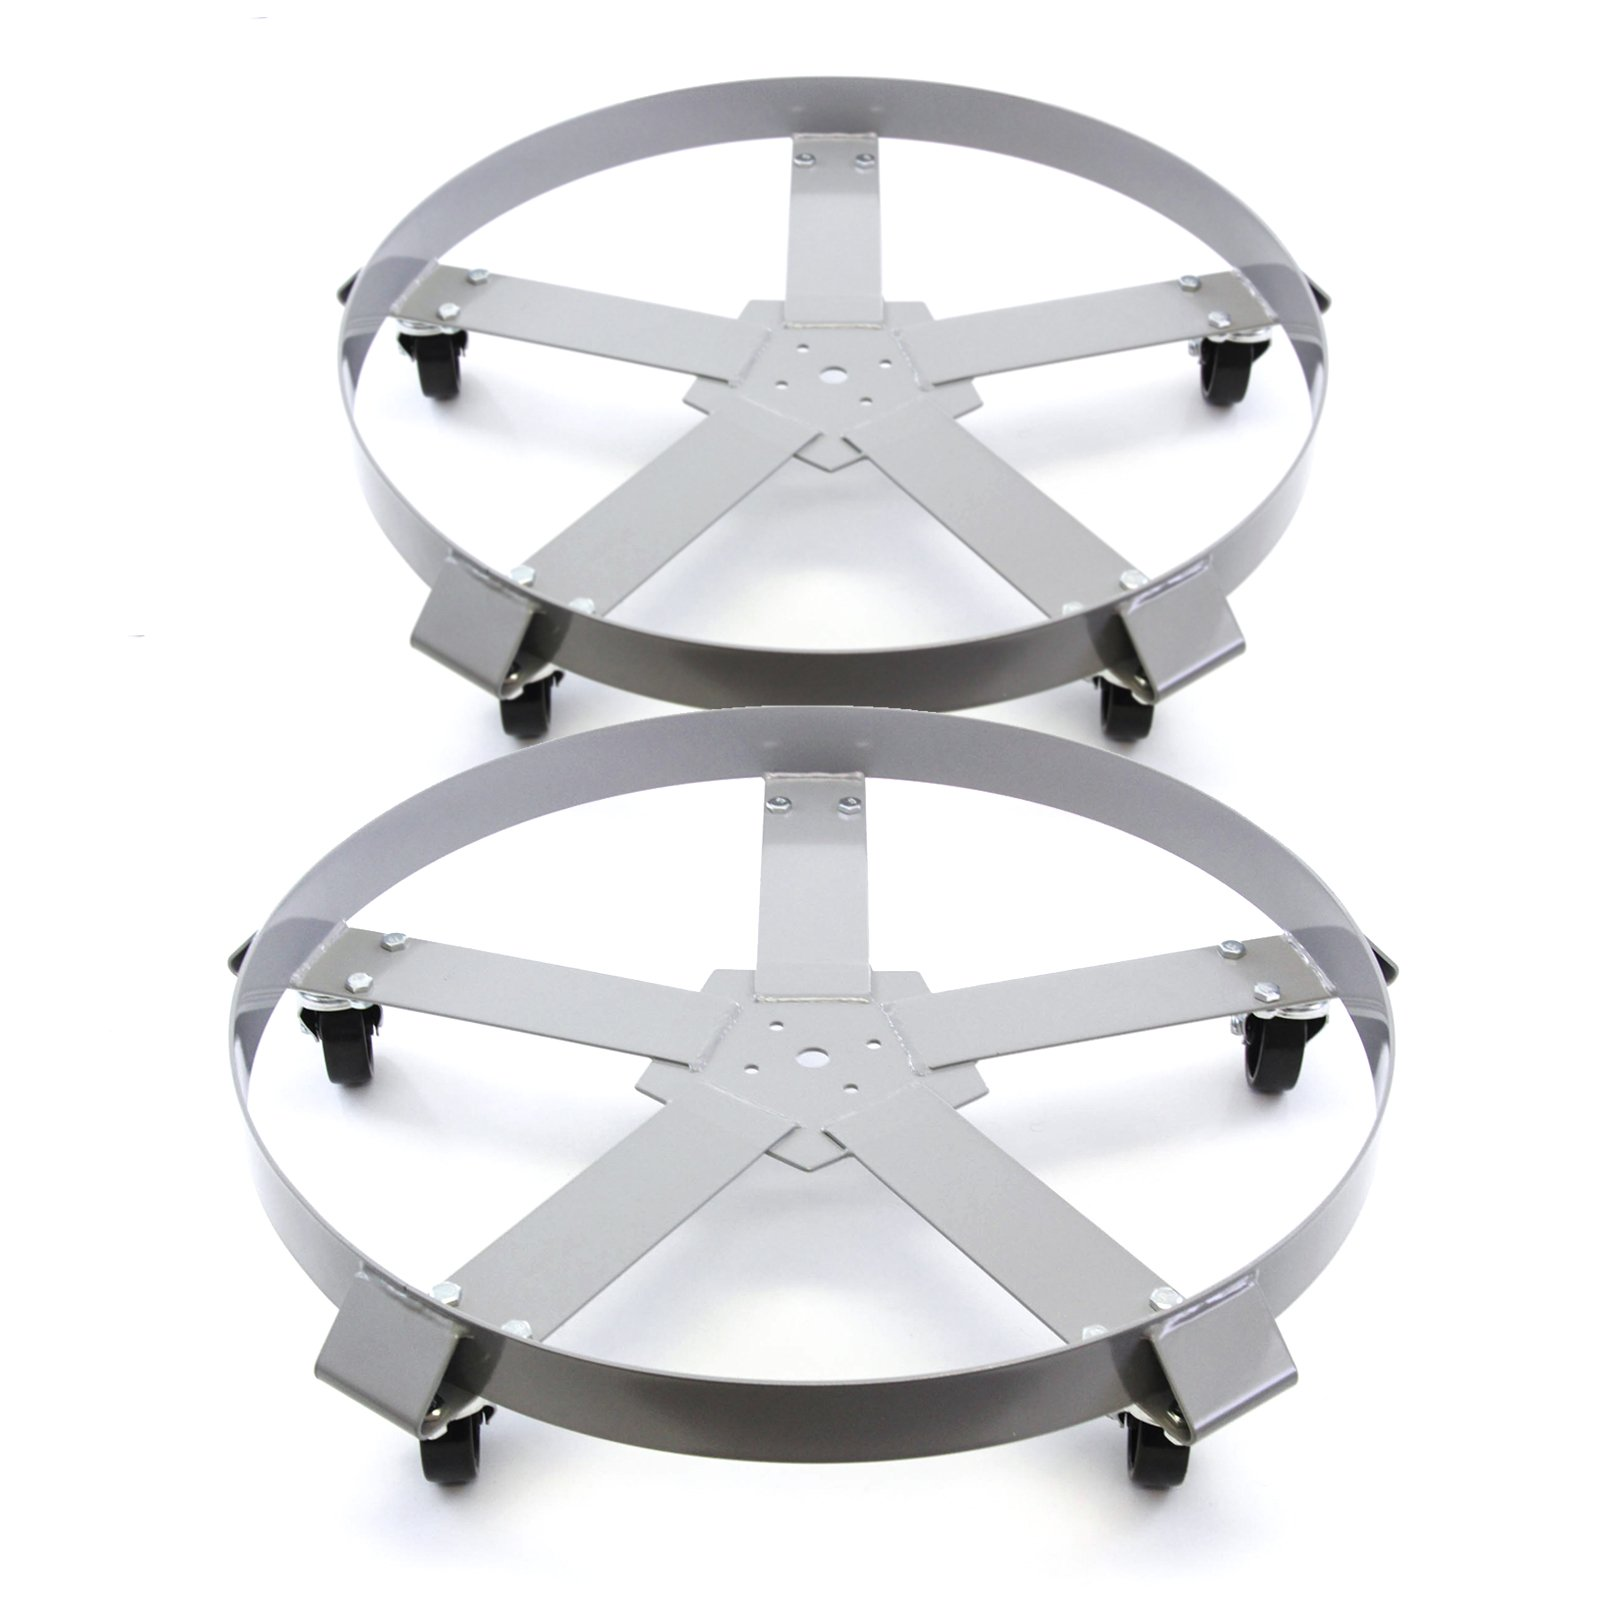 2) Extra Heavy Duty 55 Gallon Drum Dolly Dollies Swivel Casters Steel Frame Non Tip 1250 lbs 5 Wheel